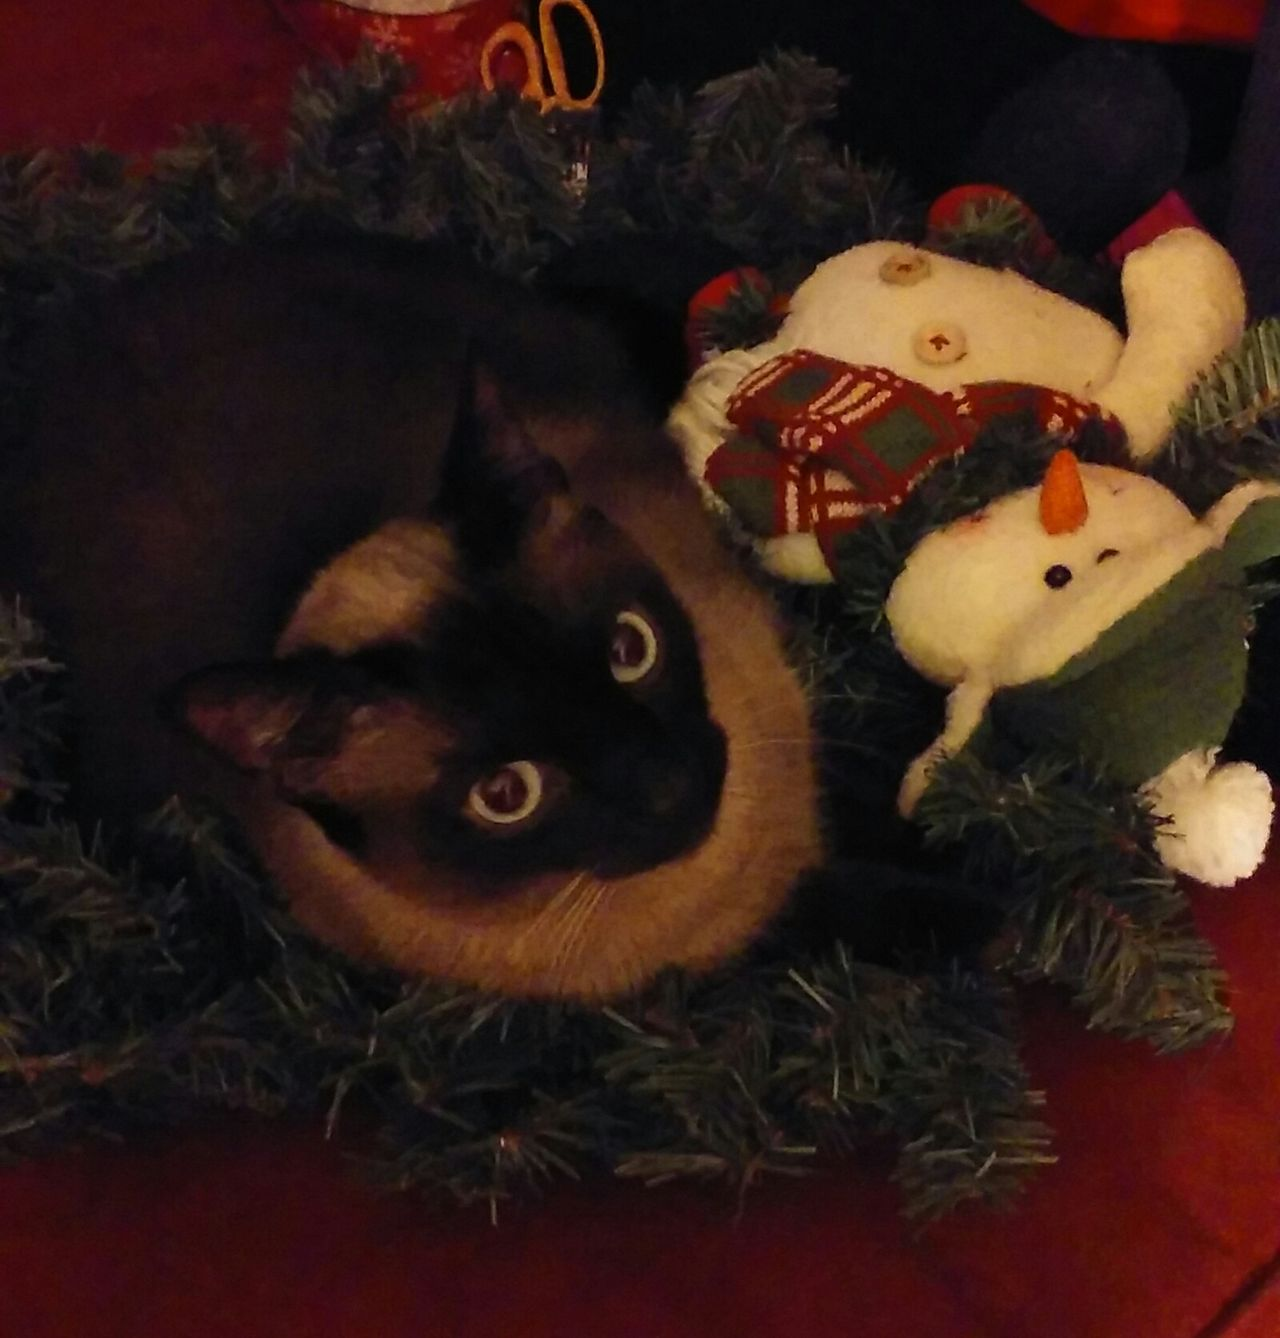 cat in wreath Siamese Wreathed Cat Ringer Snowman And His Cat Christmas Decorations Celebration